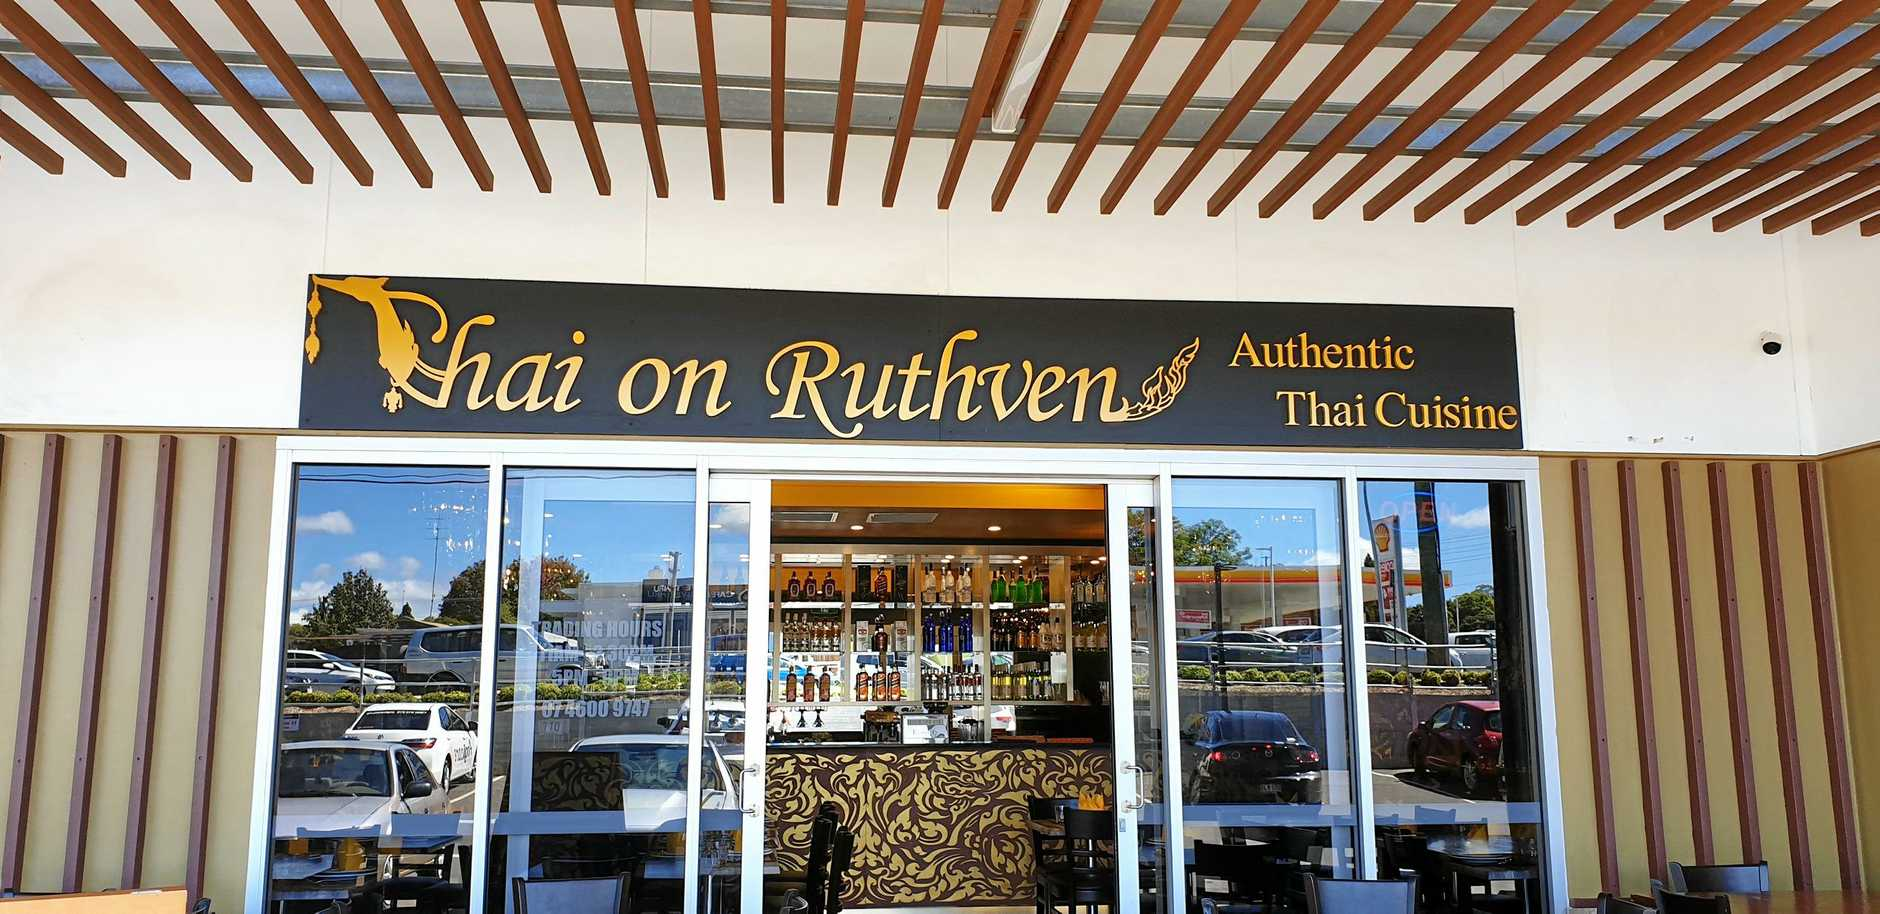 NOW OPEN: Thai on Ruthven, based at the Intersection in South Toowoomba, has opened for business.